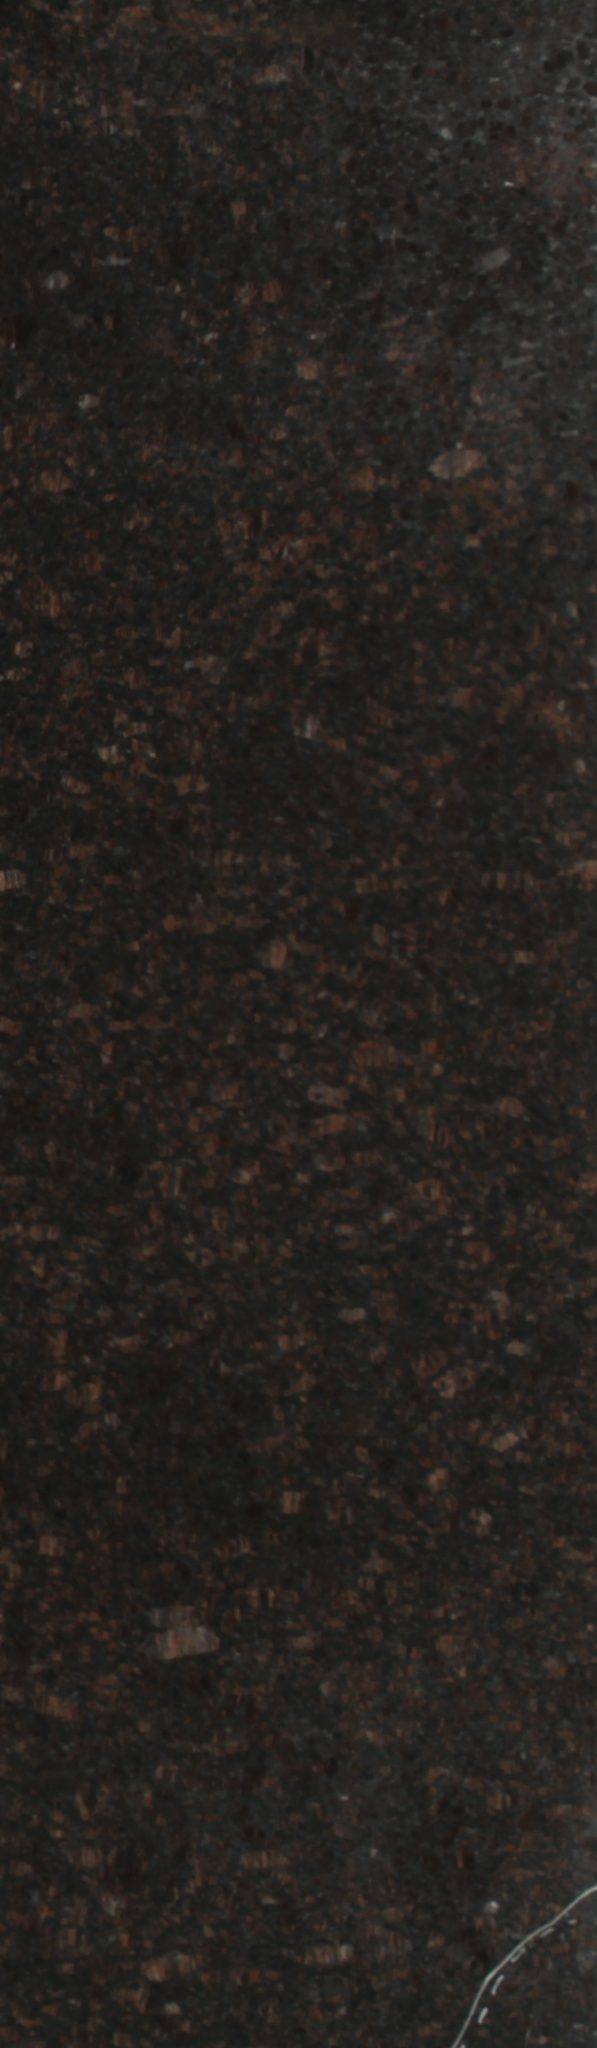 Image for Granite 2186-1: Tan Brown